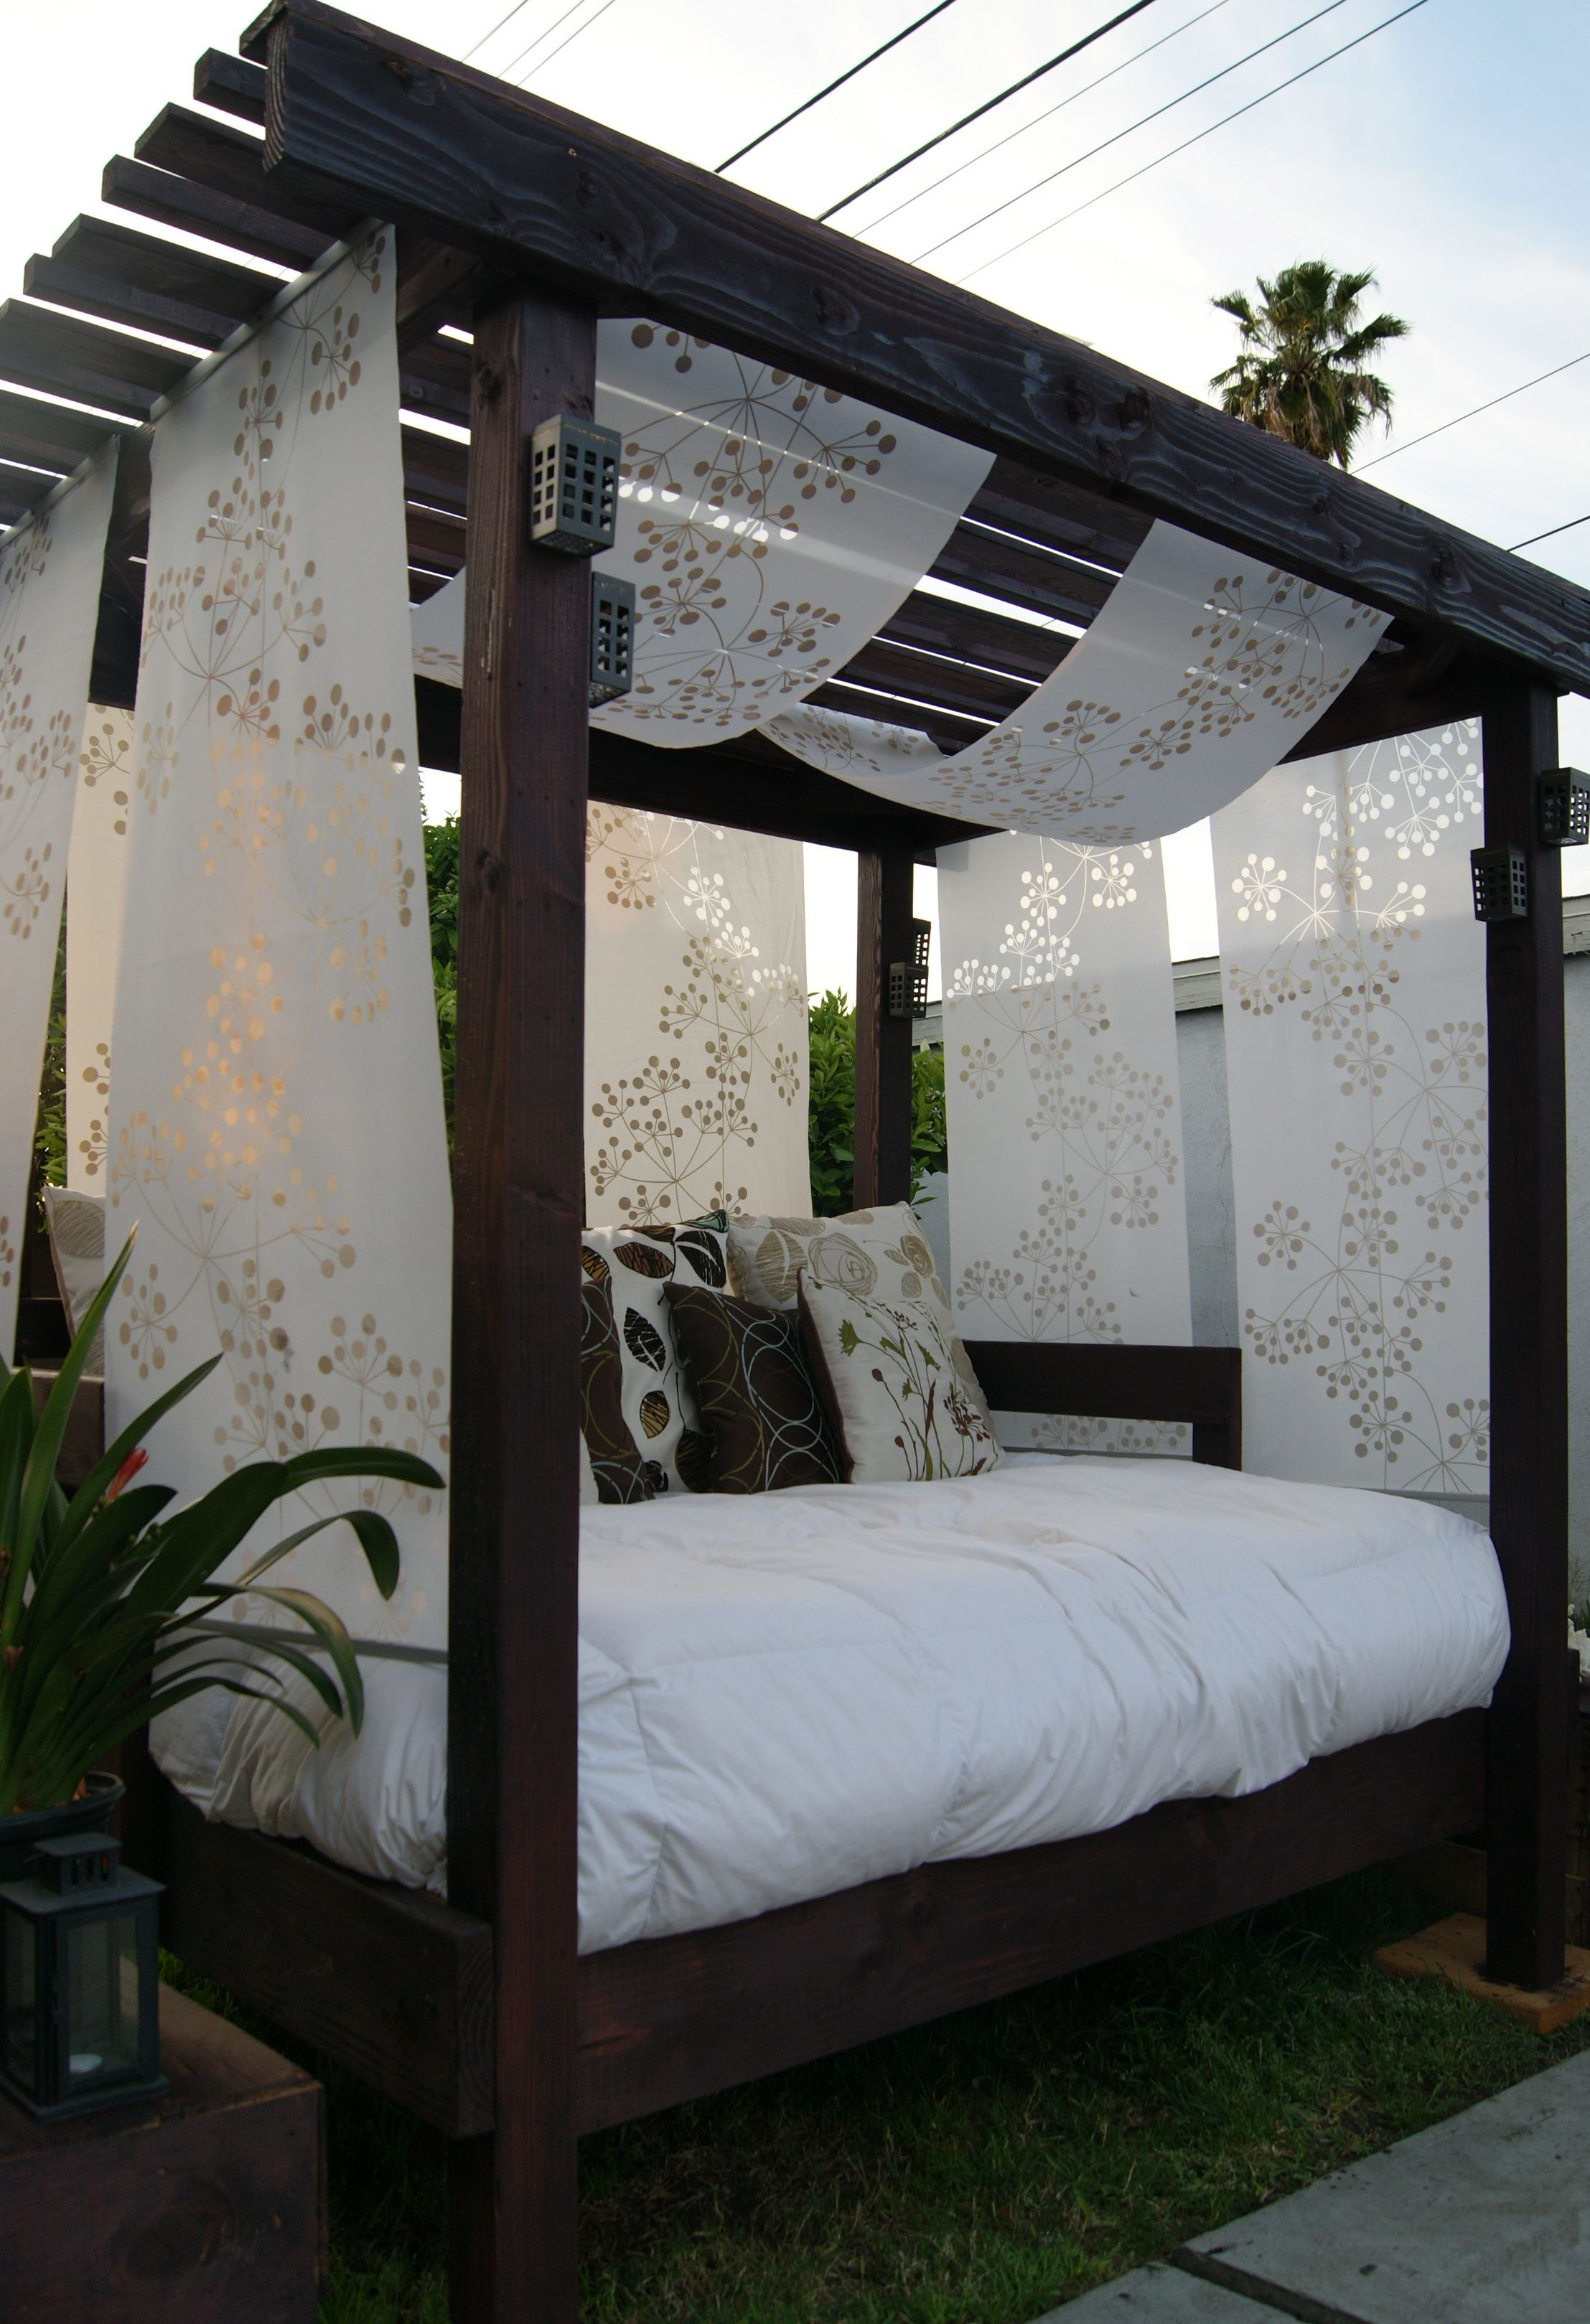 Diy cabana for the backyard with an old used futon i for Garden cabana designs